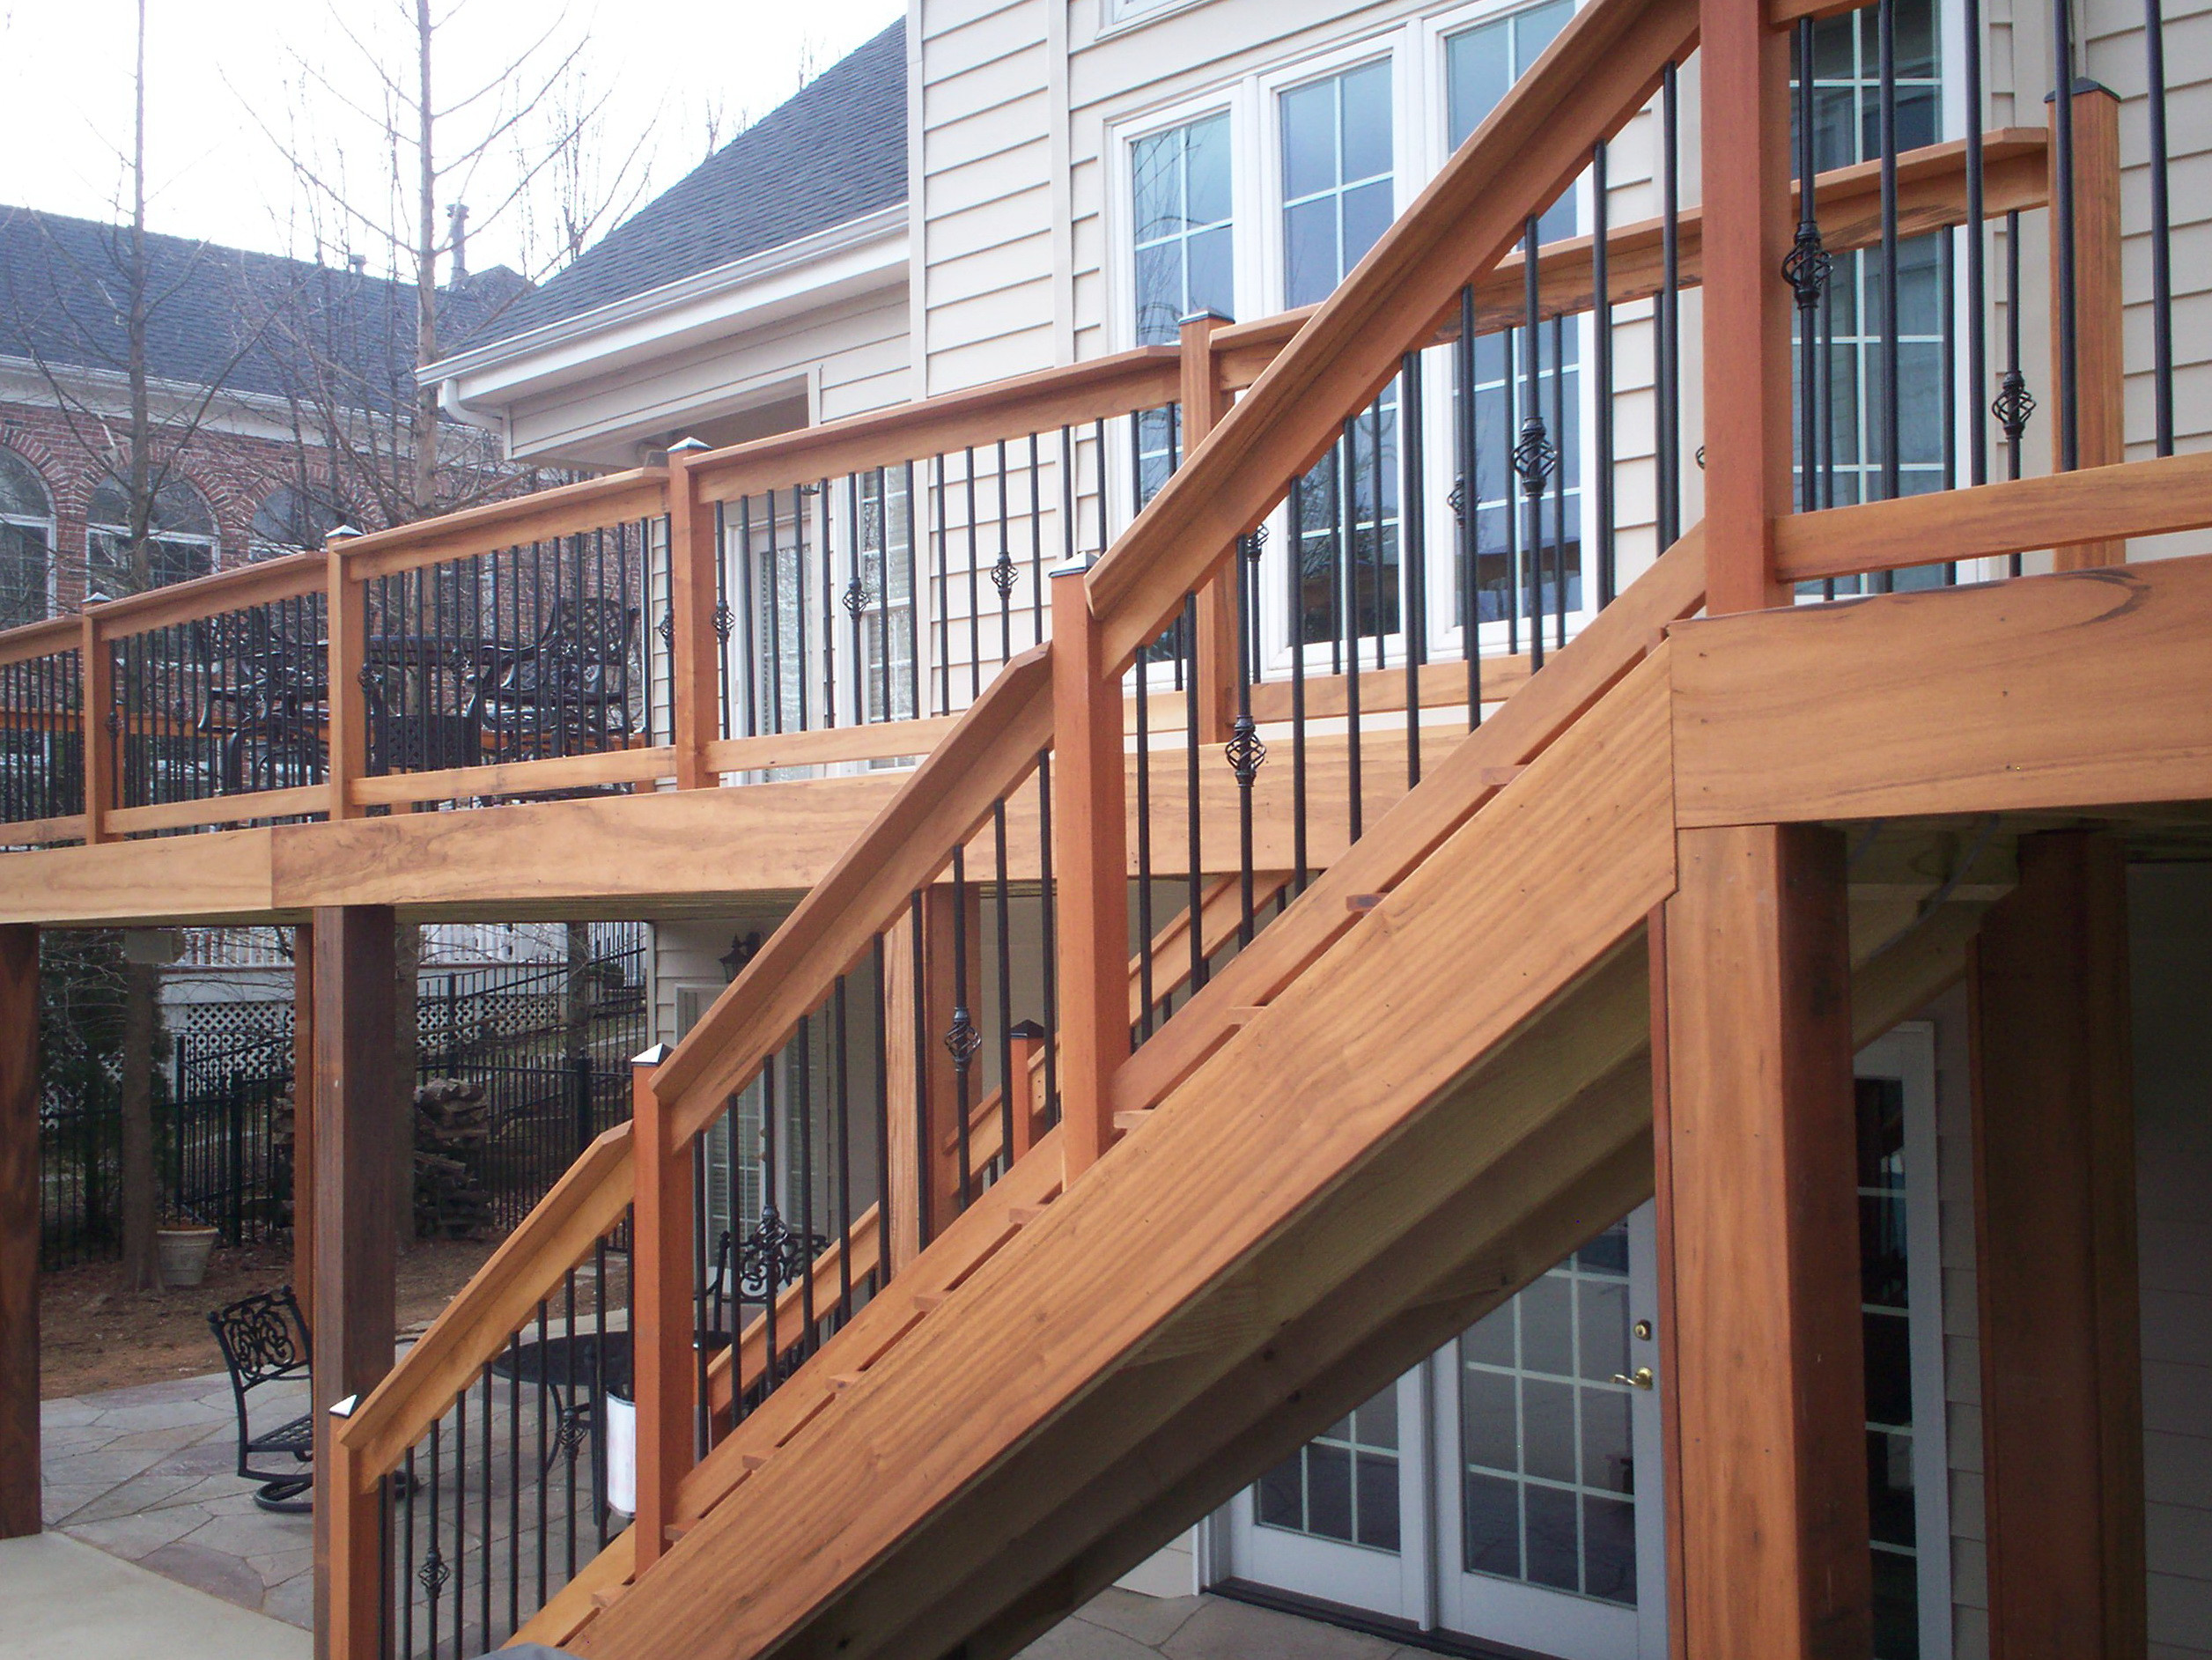 Best ideas about Deck Stair Codes . Save or Pin Deck Stair Railing Code Now.